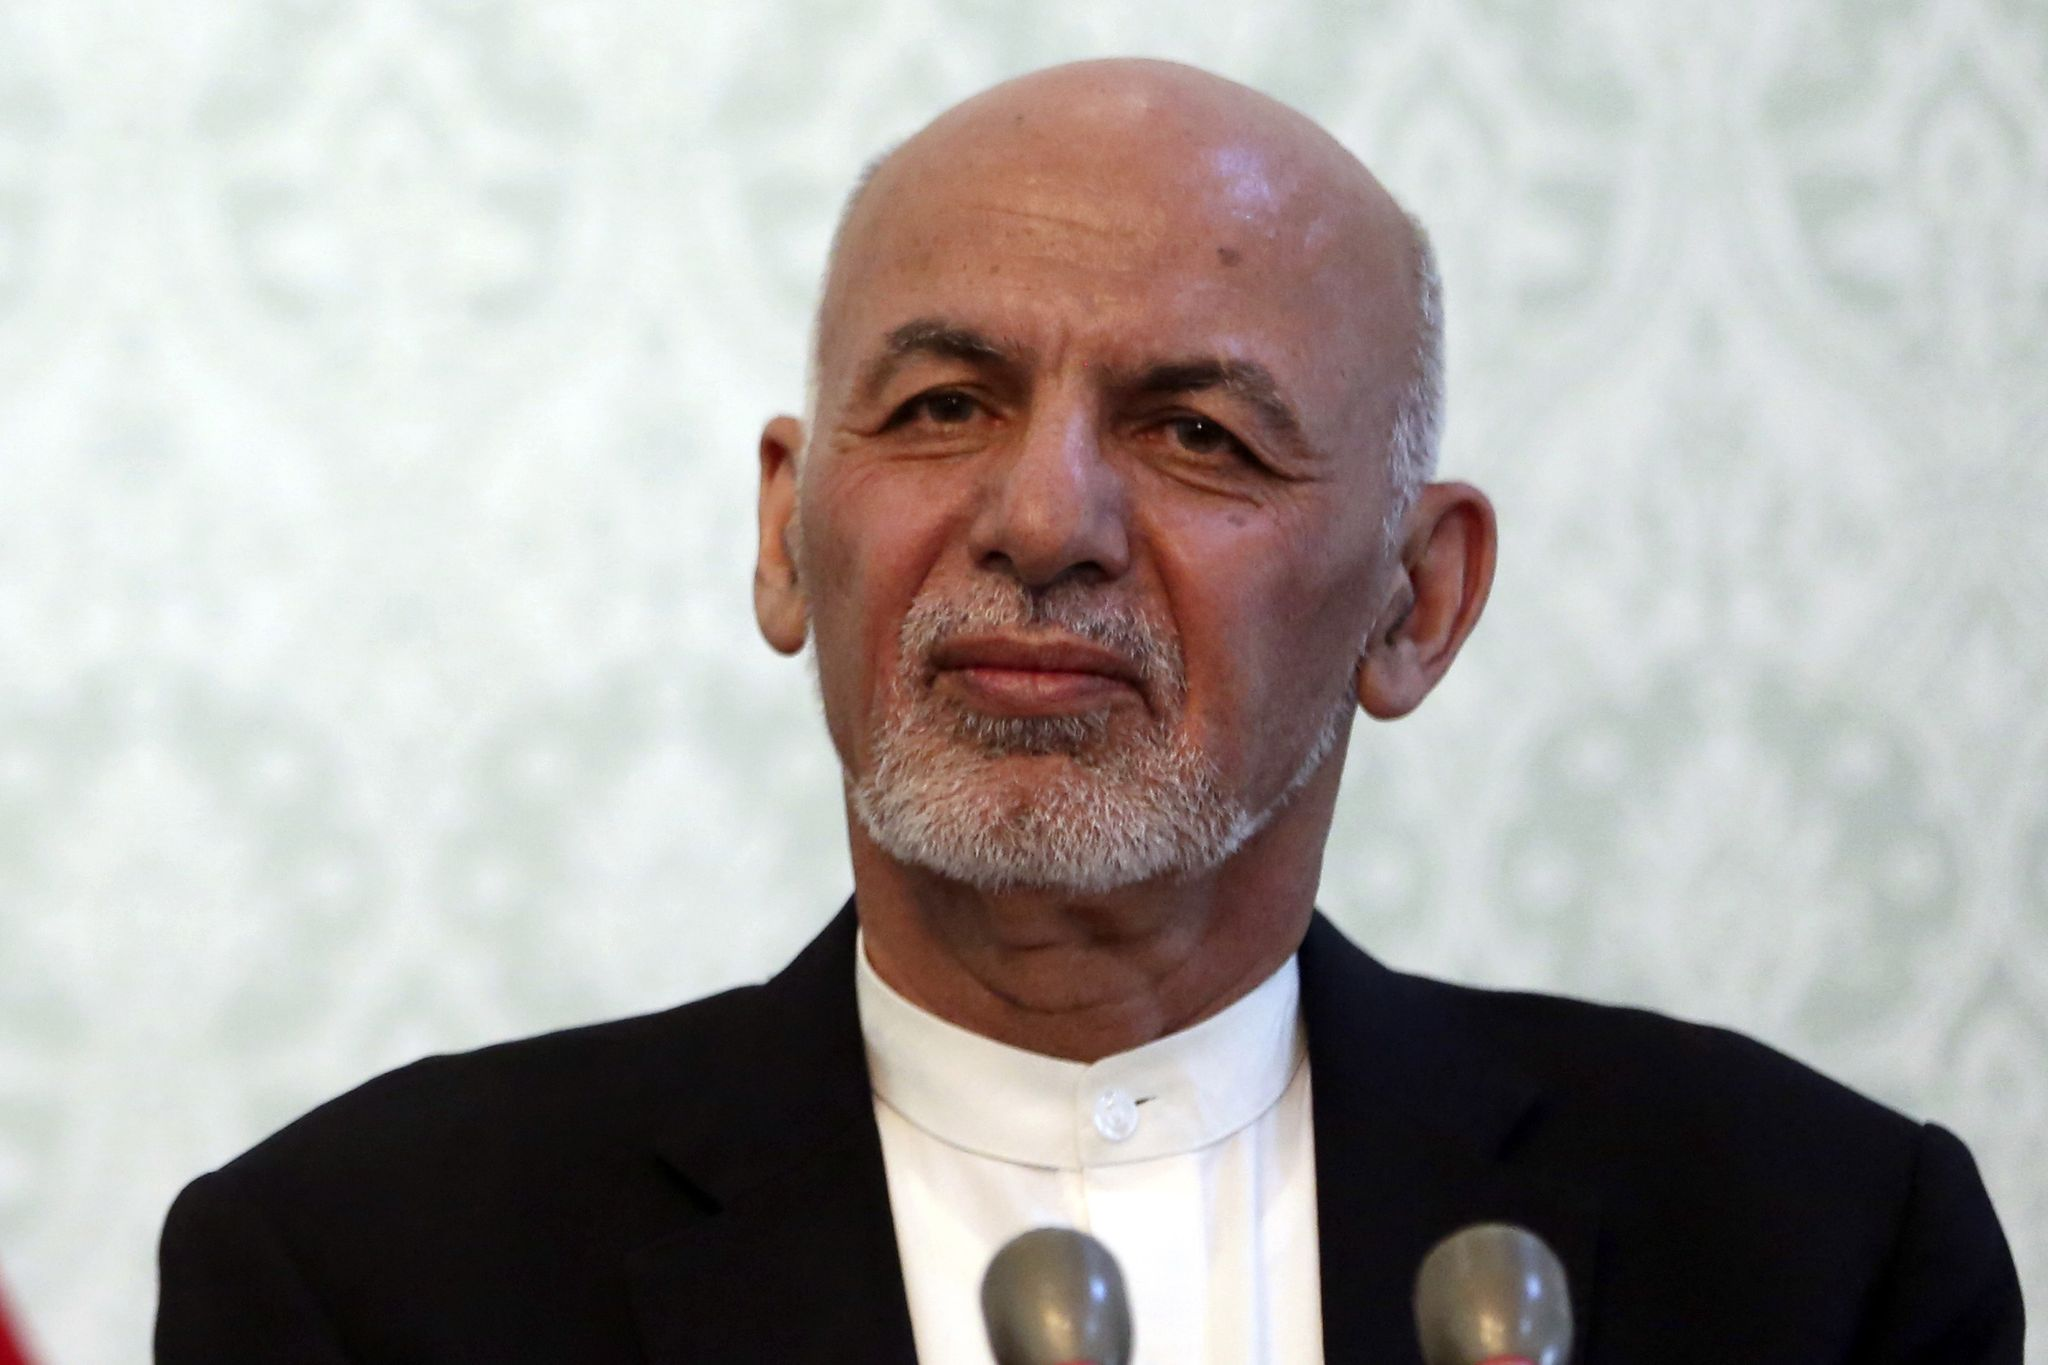 U.S., Afghanistan in 'total agreement' on pursuing Taliban peace talks